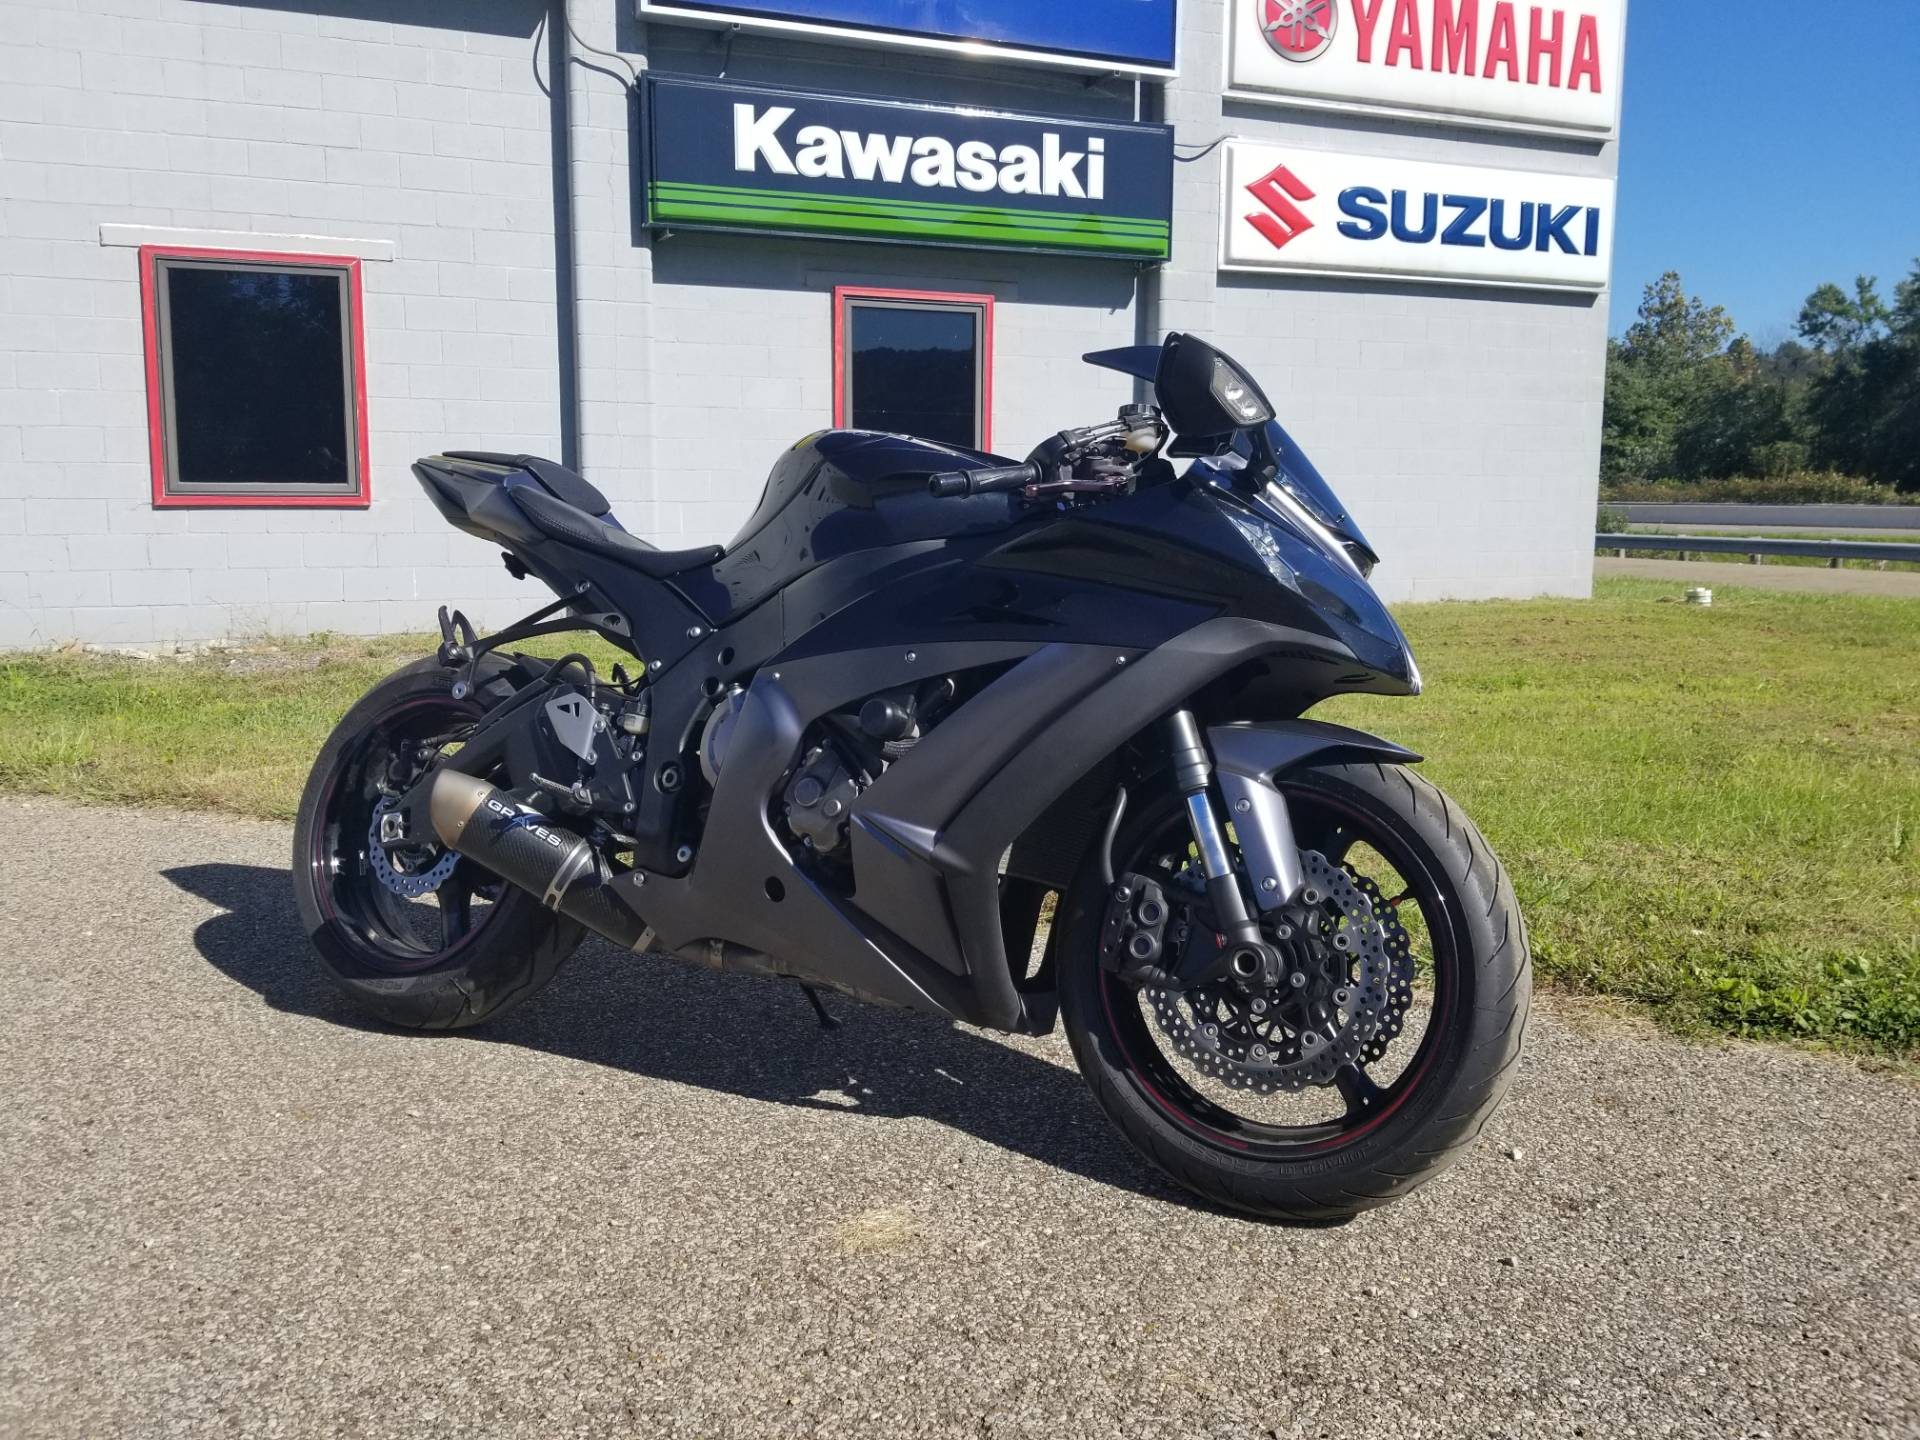 2012 Kawasaki Ninja ZX-10R for sale 7638